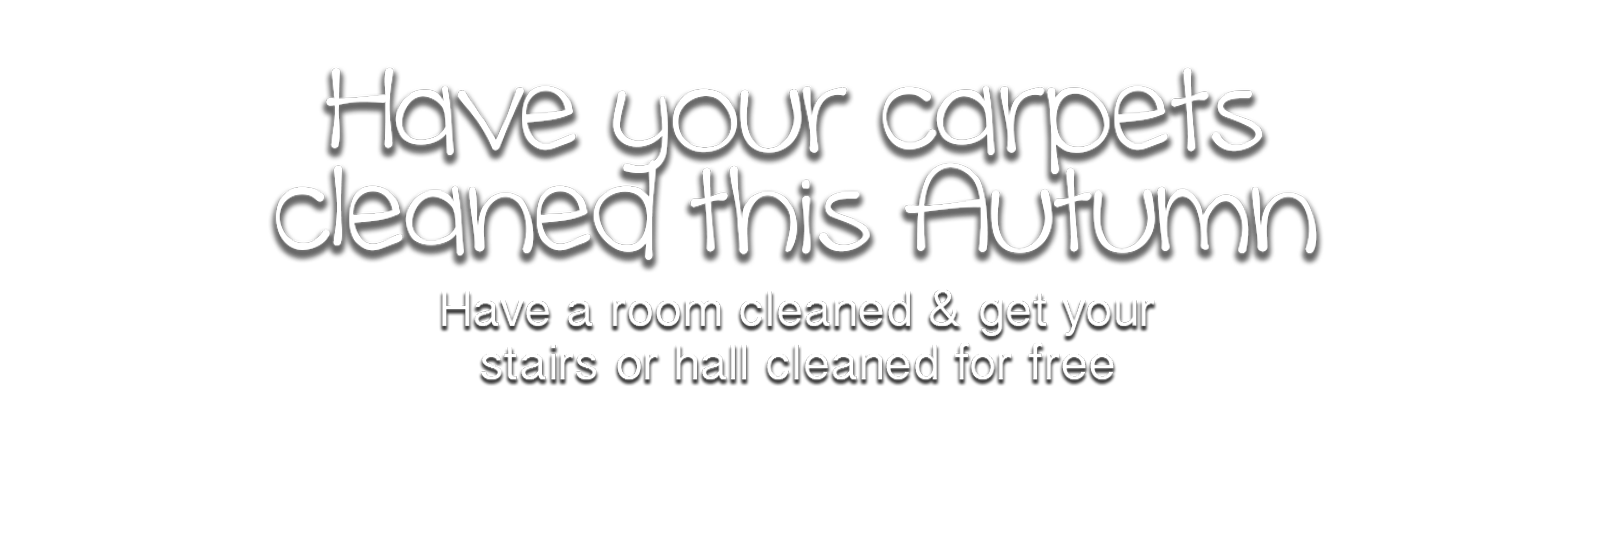 Autumn carpet cleaning offer